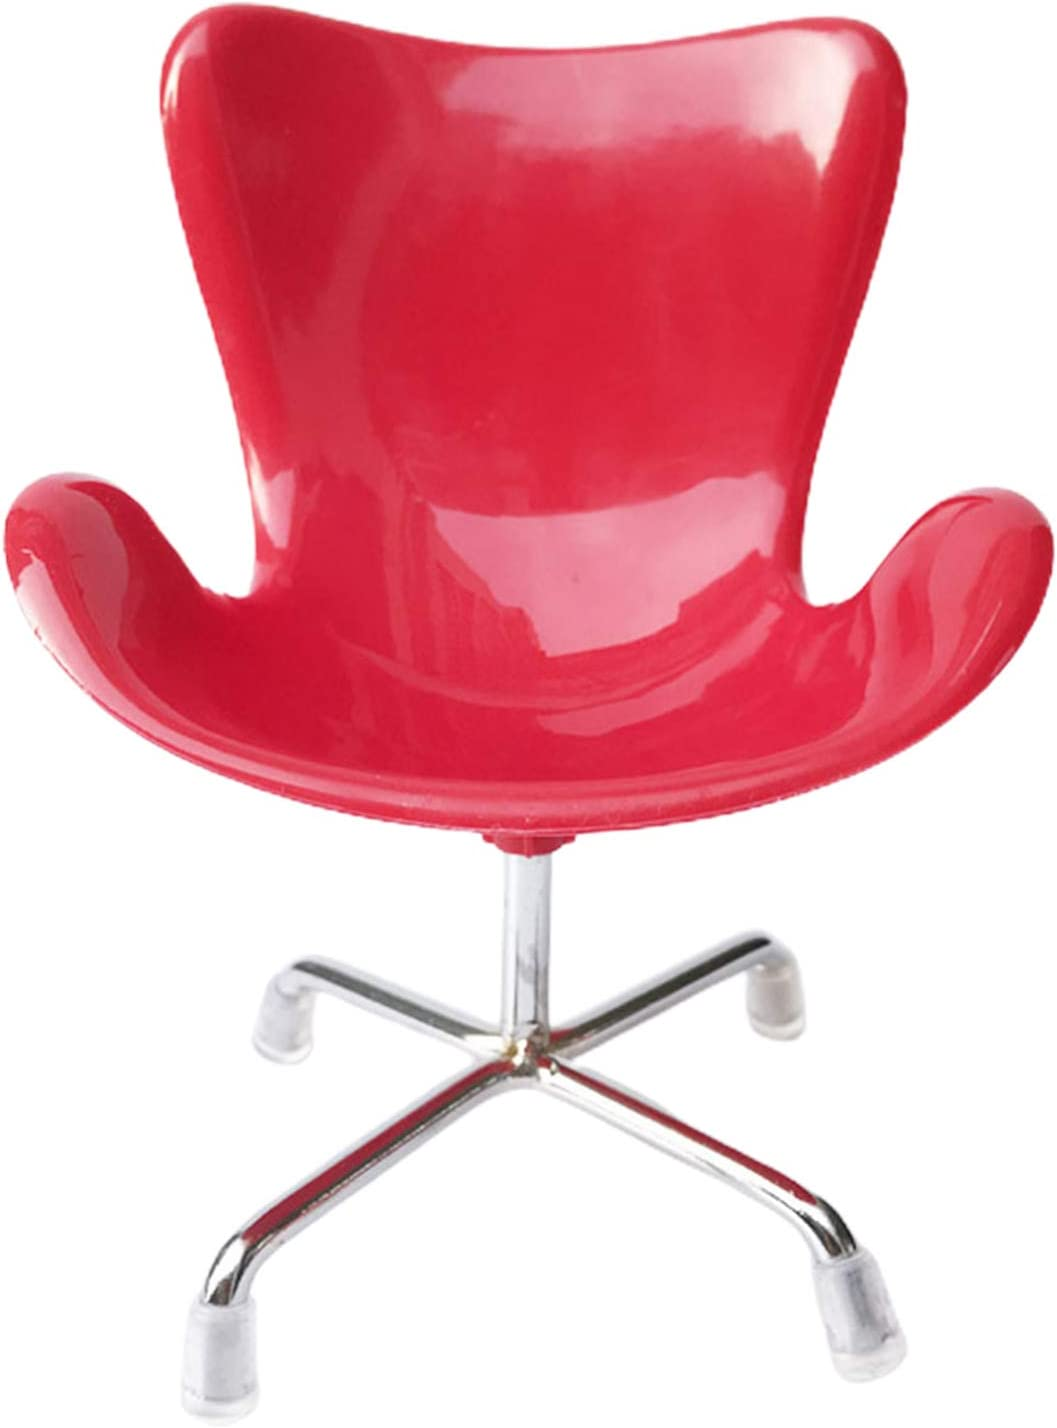 helegeSONG 1:6 Scale Dollhouse Miniature Plastic Chair Dollhouse Living Room Dollhouse Accessories Red